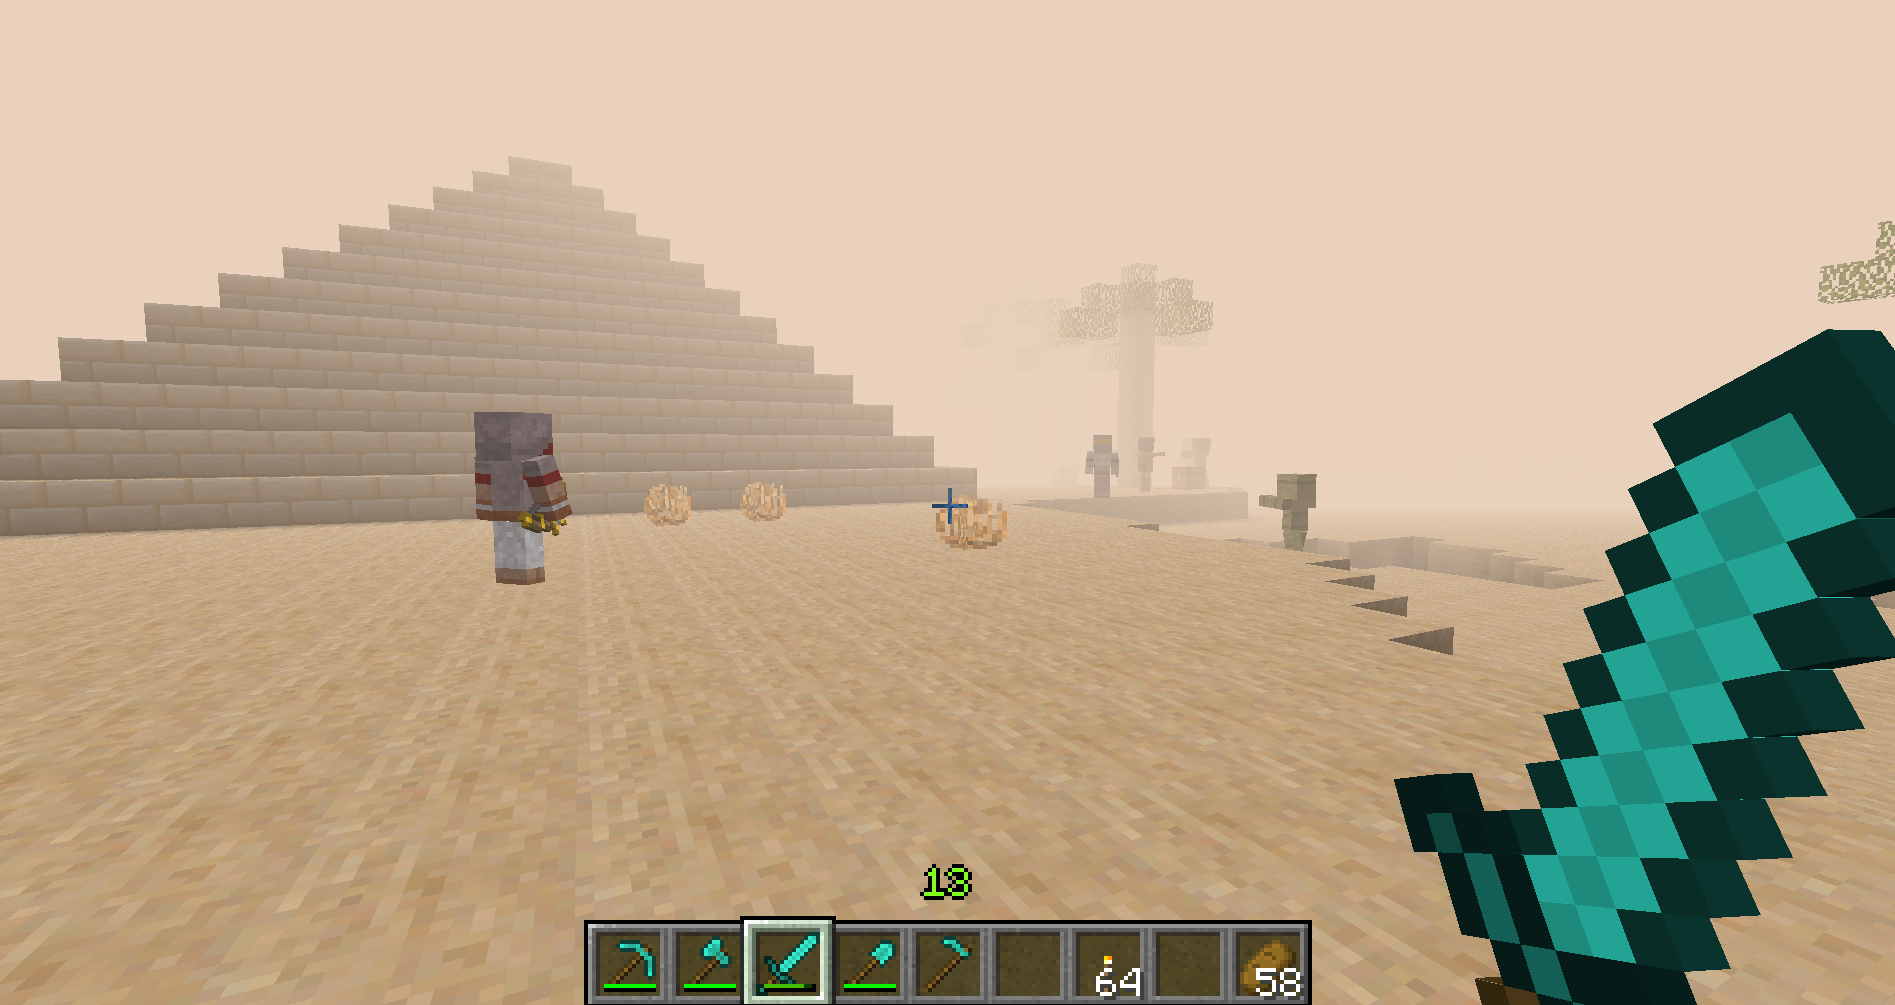 http://minecraft-forum.net/wp-content/uploads/2013/04/b2fa1__Atum-Journey-into-the-Sands-Mod-1.png